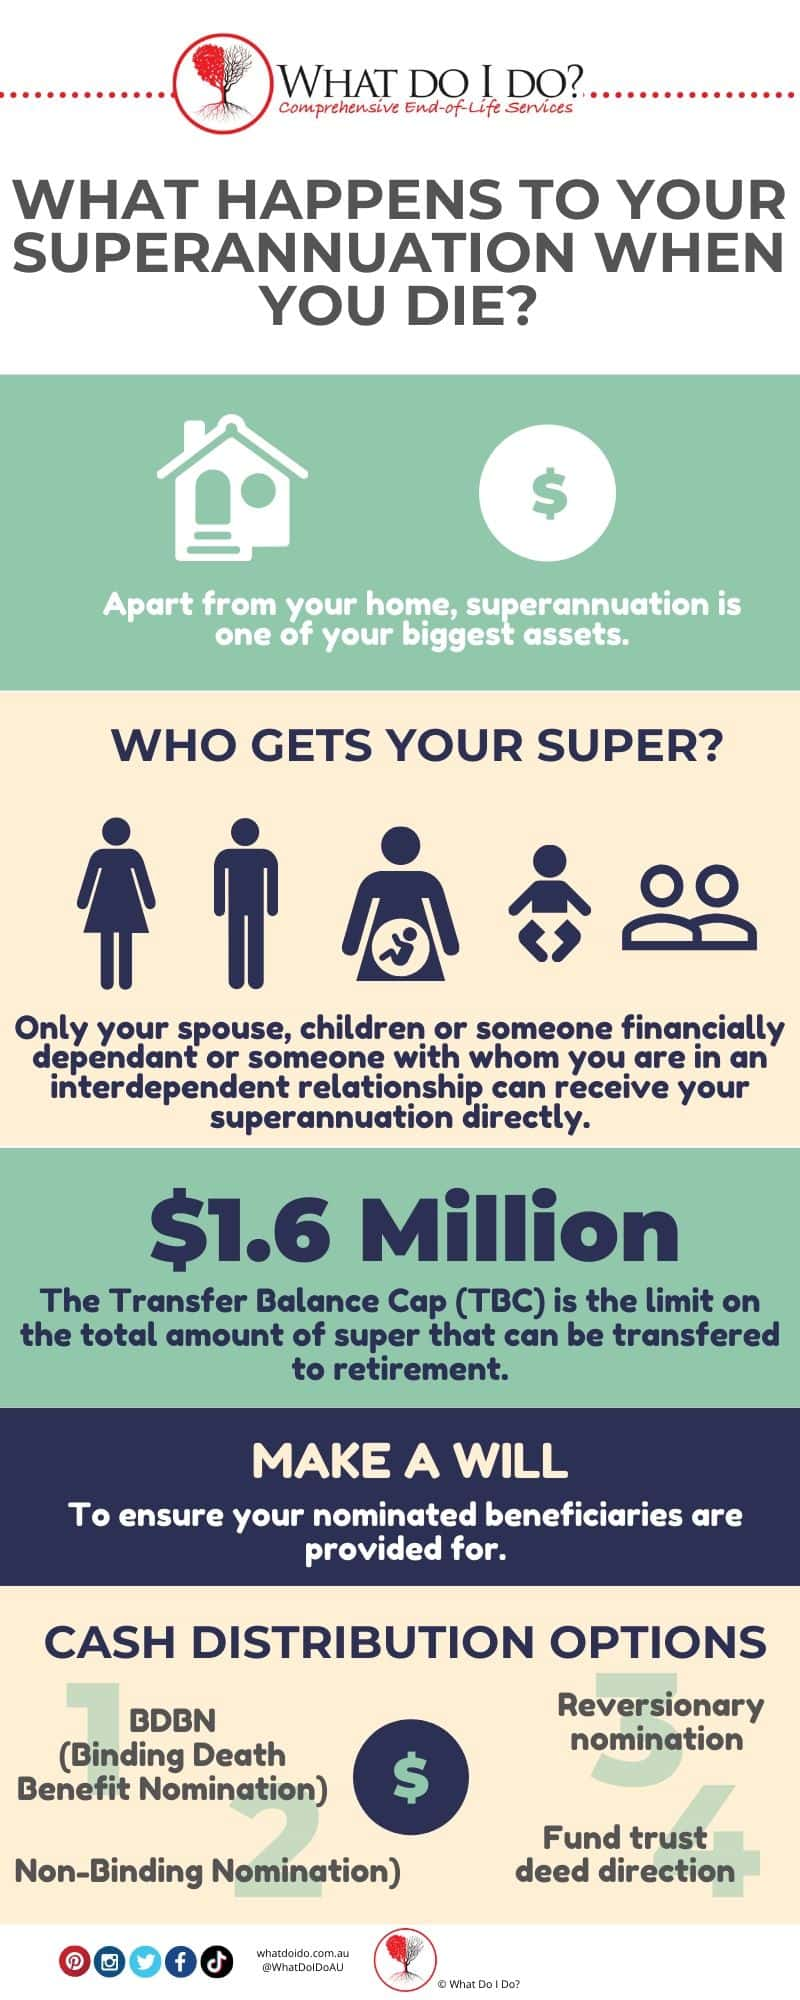 WHAT HAPPENS TO YOUR SUPERANNUATION when you die. Infographic.